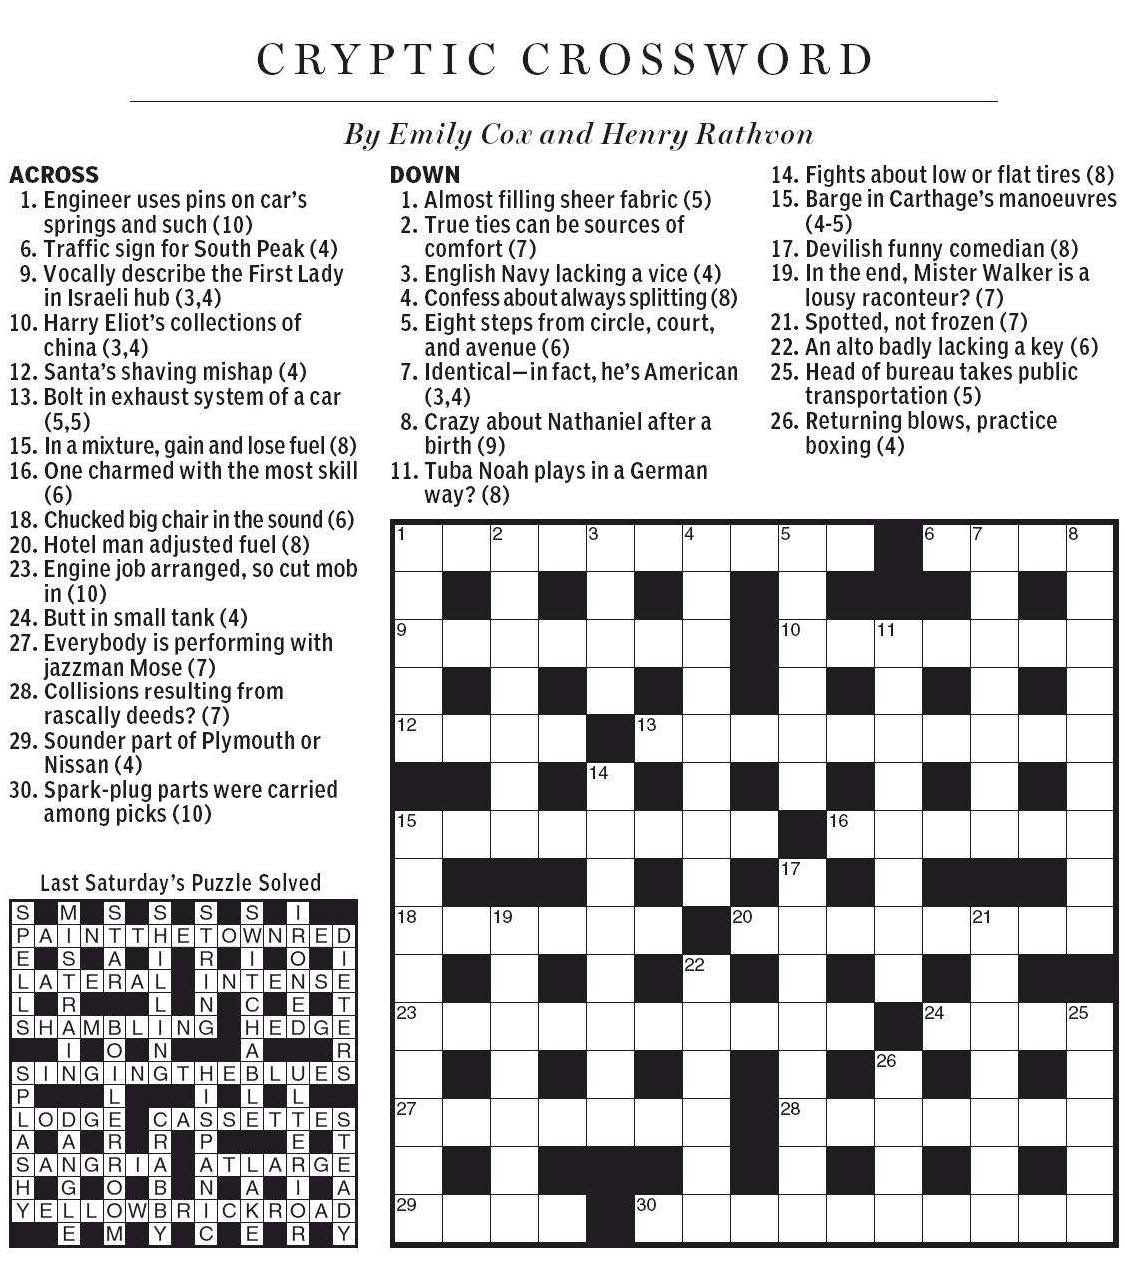 National Post Cryptic Crossword Forum September 2012